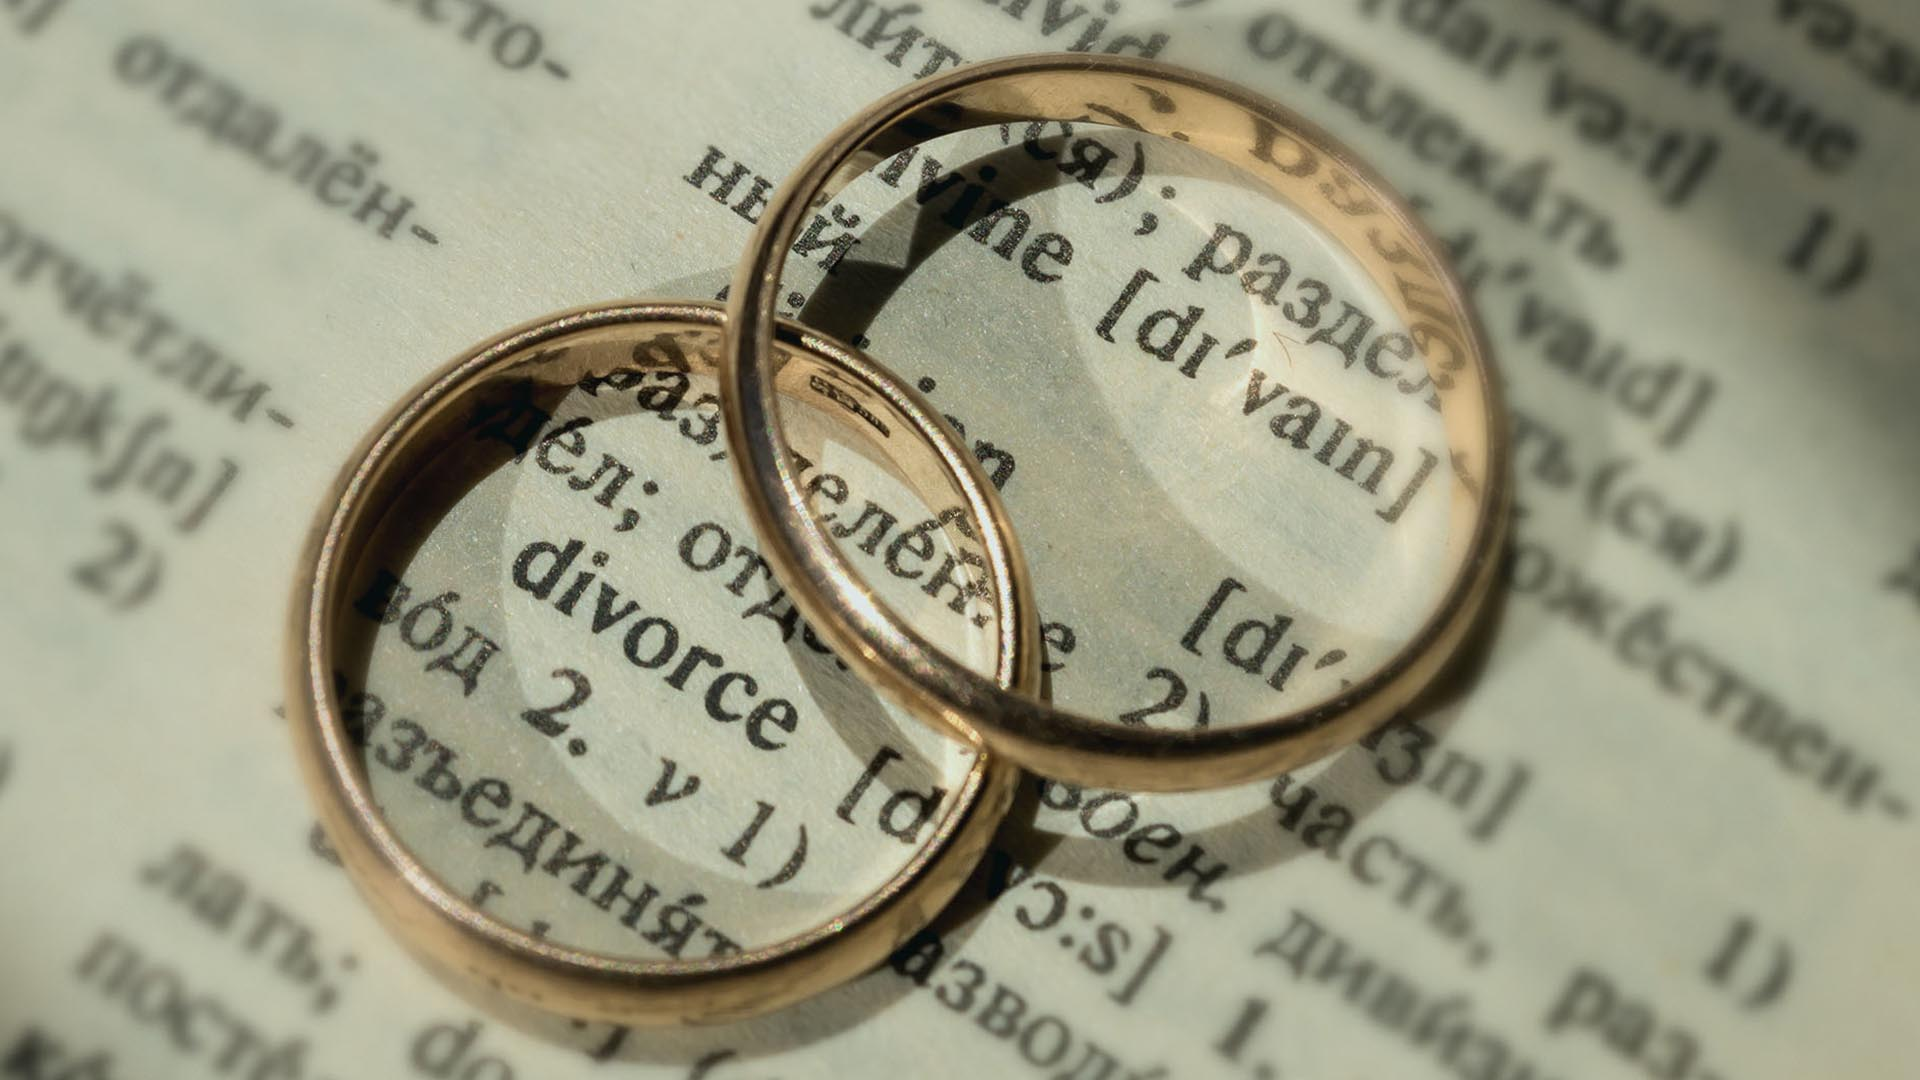 wedding rings on top of a dictionary open to the word